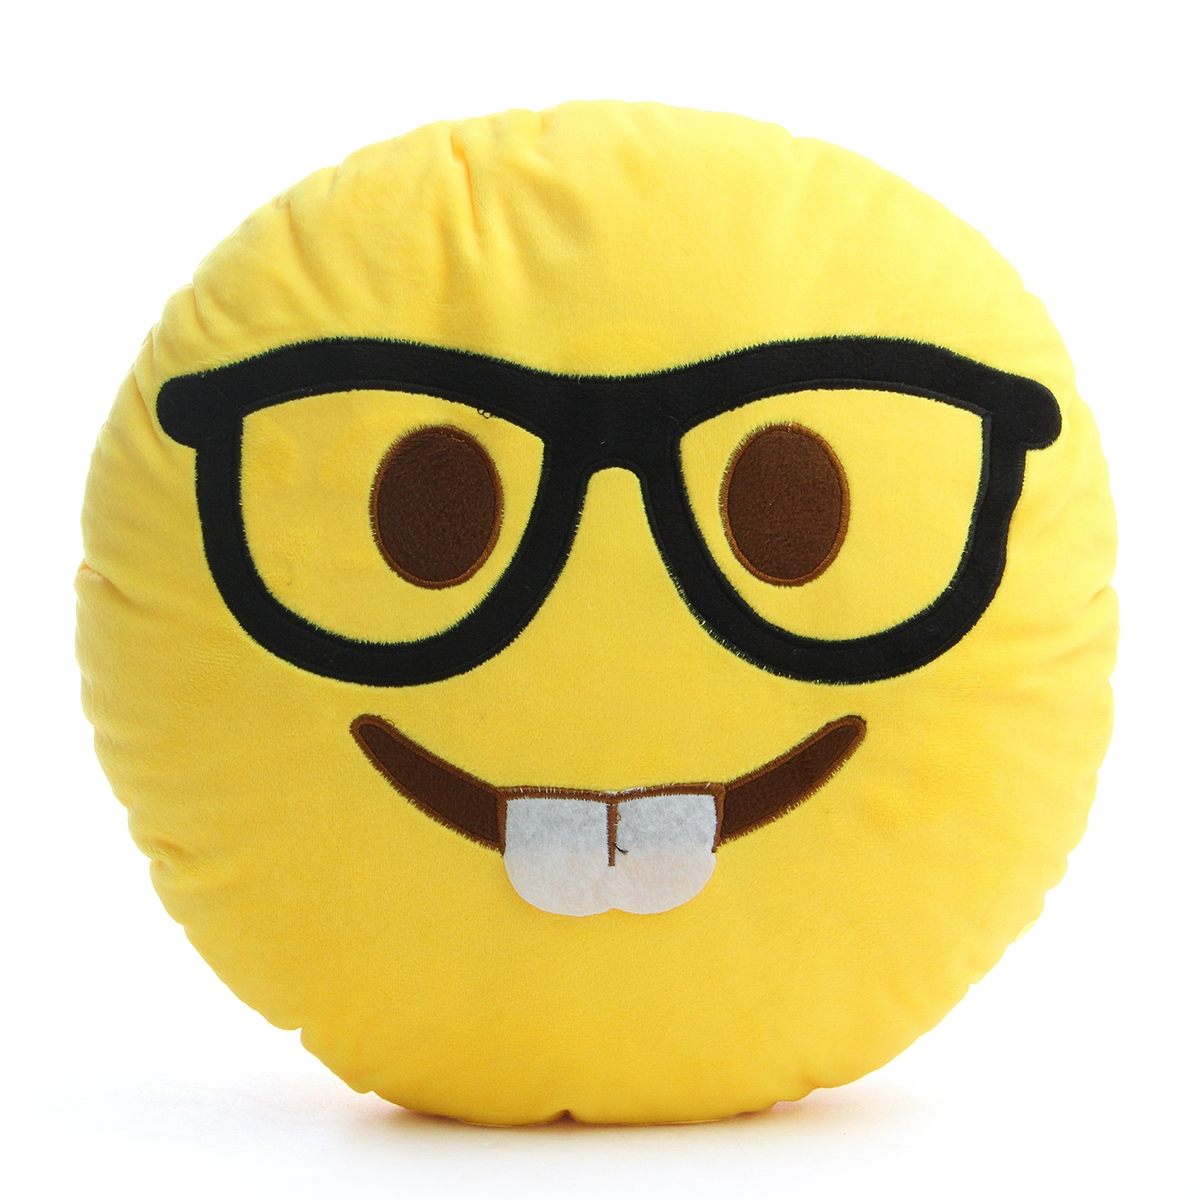 35CM Large Front Teeth Nerd Emoji Emoticon Plush PP Cotton Soft Toy